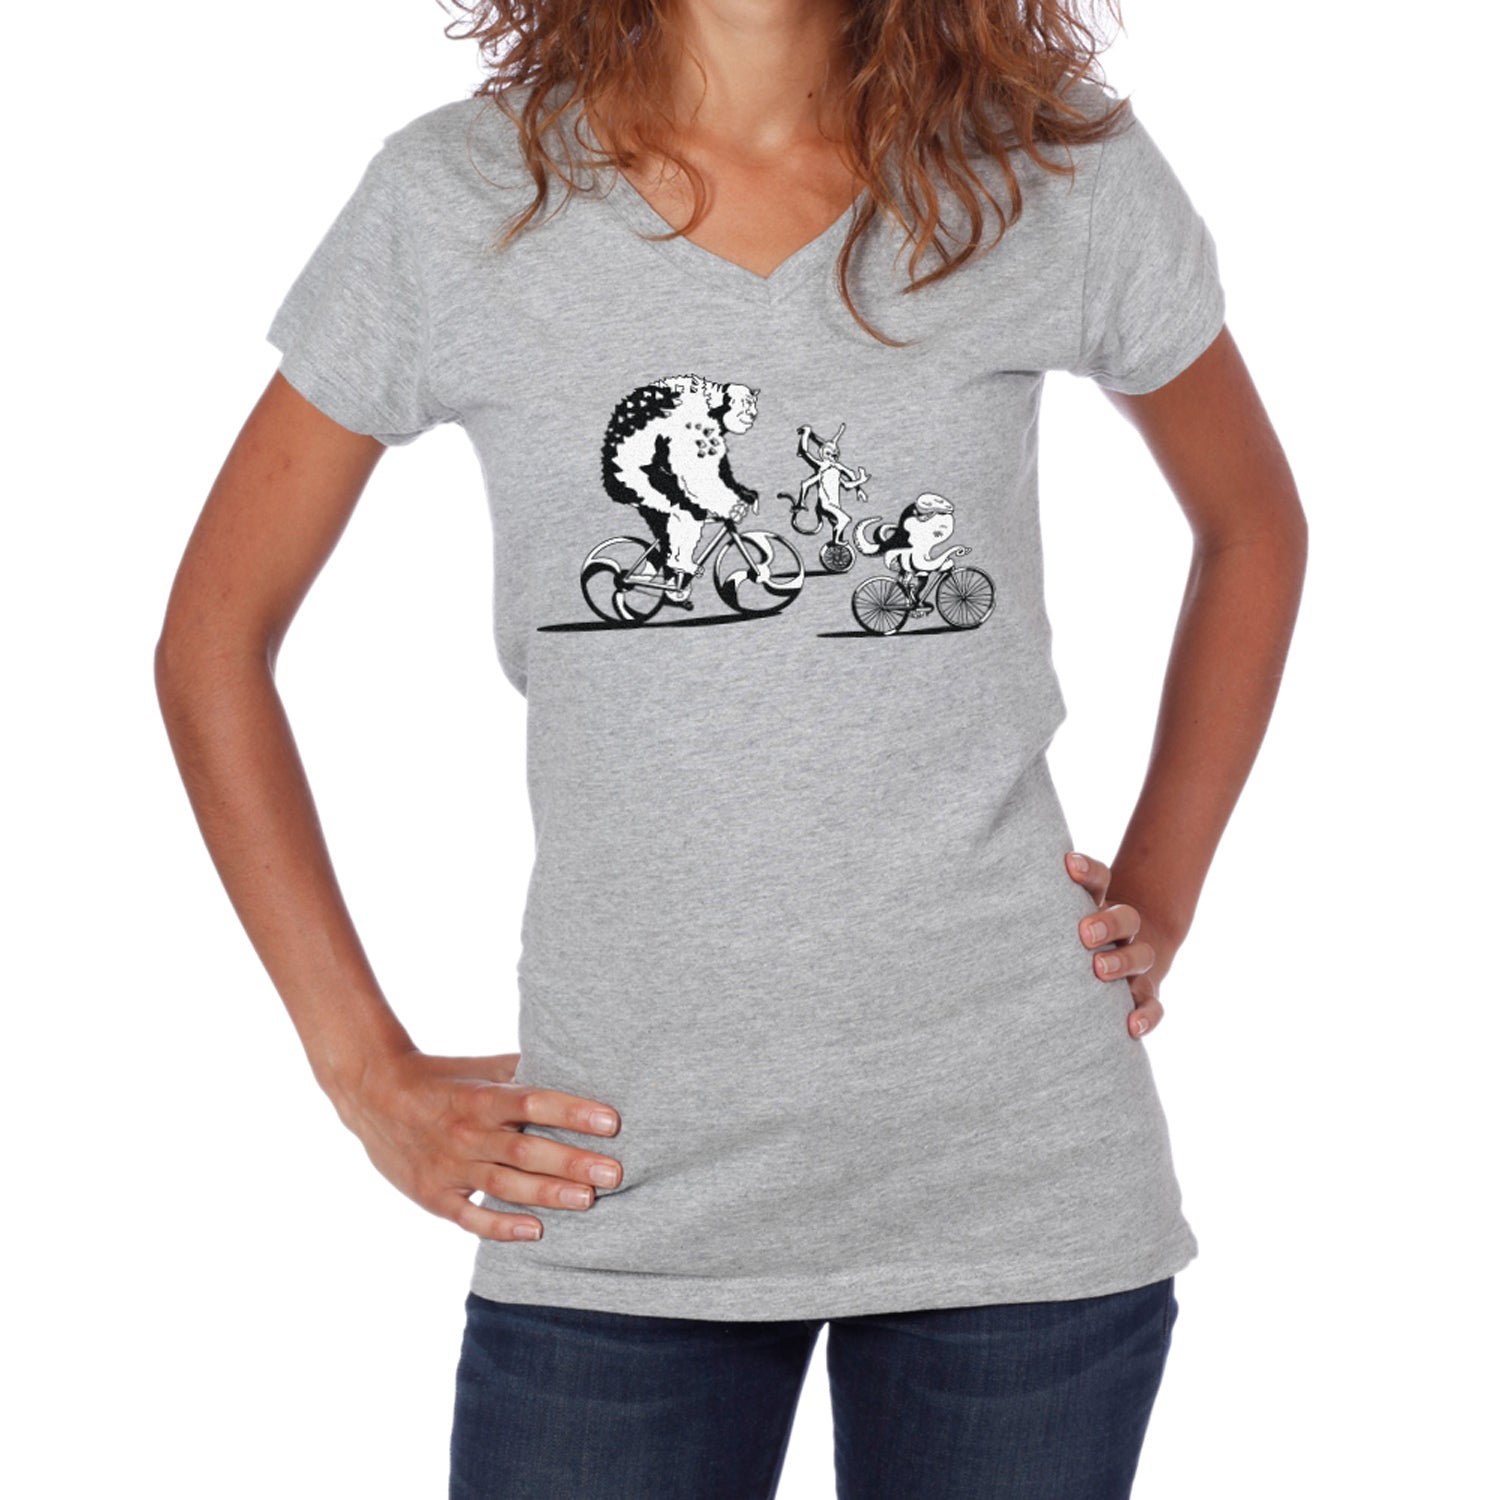 Women's Bike More Monsters T-Shirt